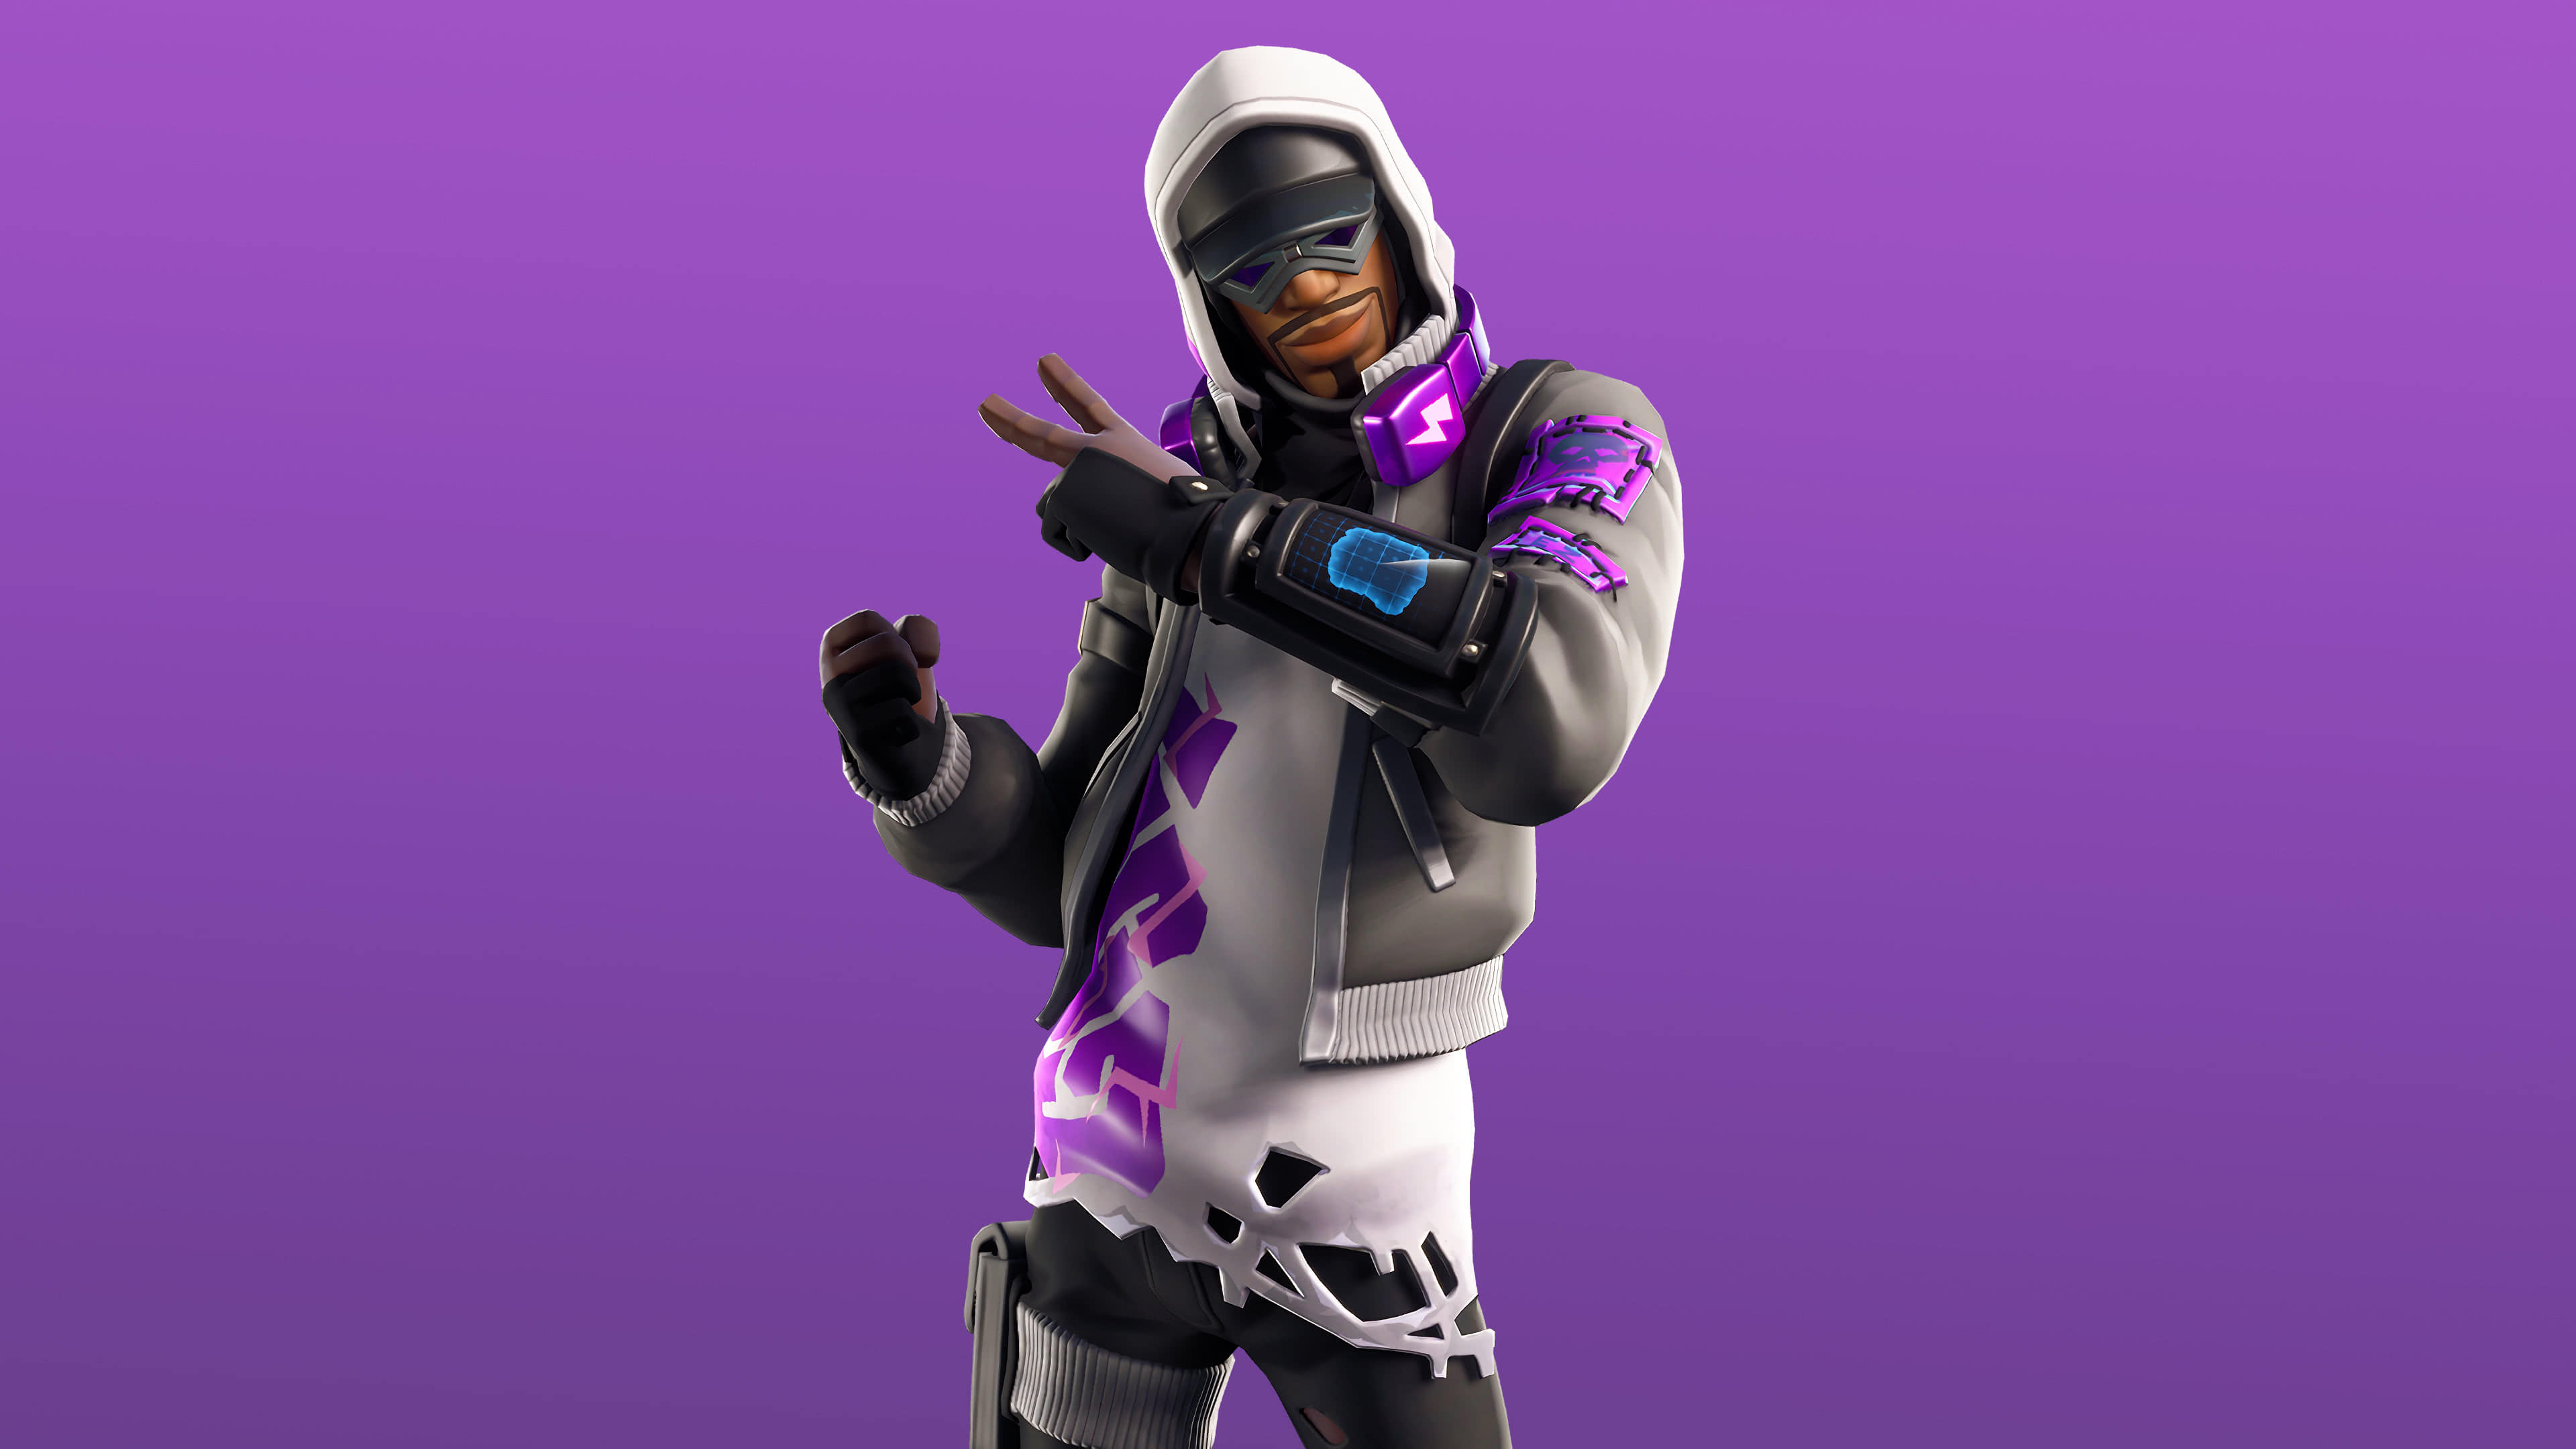 fortnite storm stalker set stratus skin outfit uhd 4k wallpaper